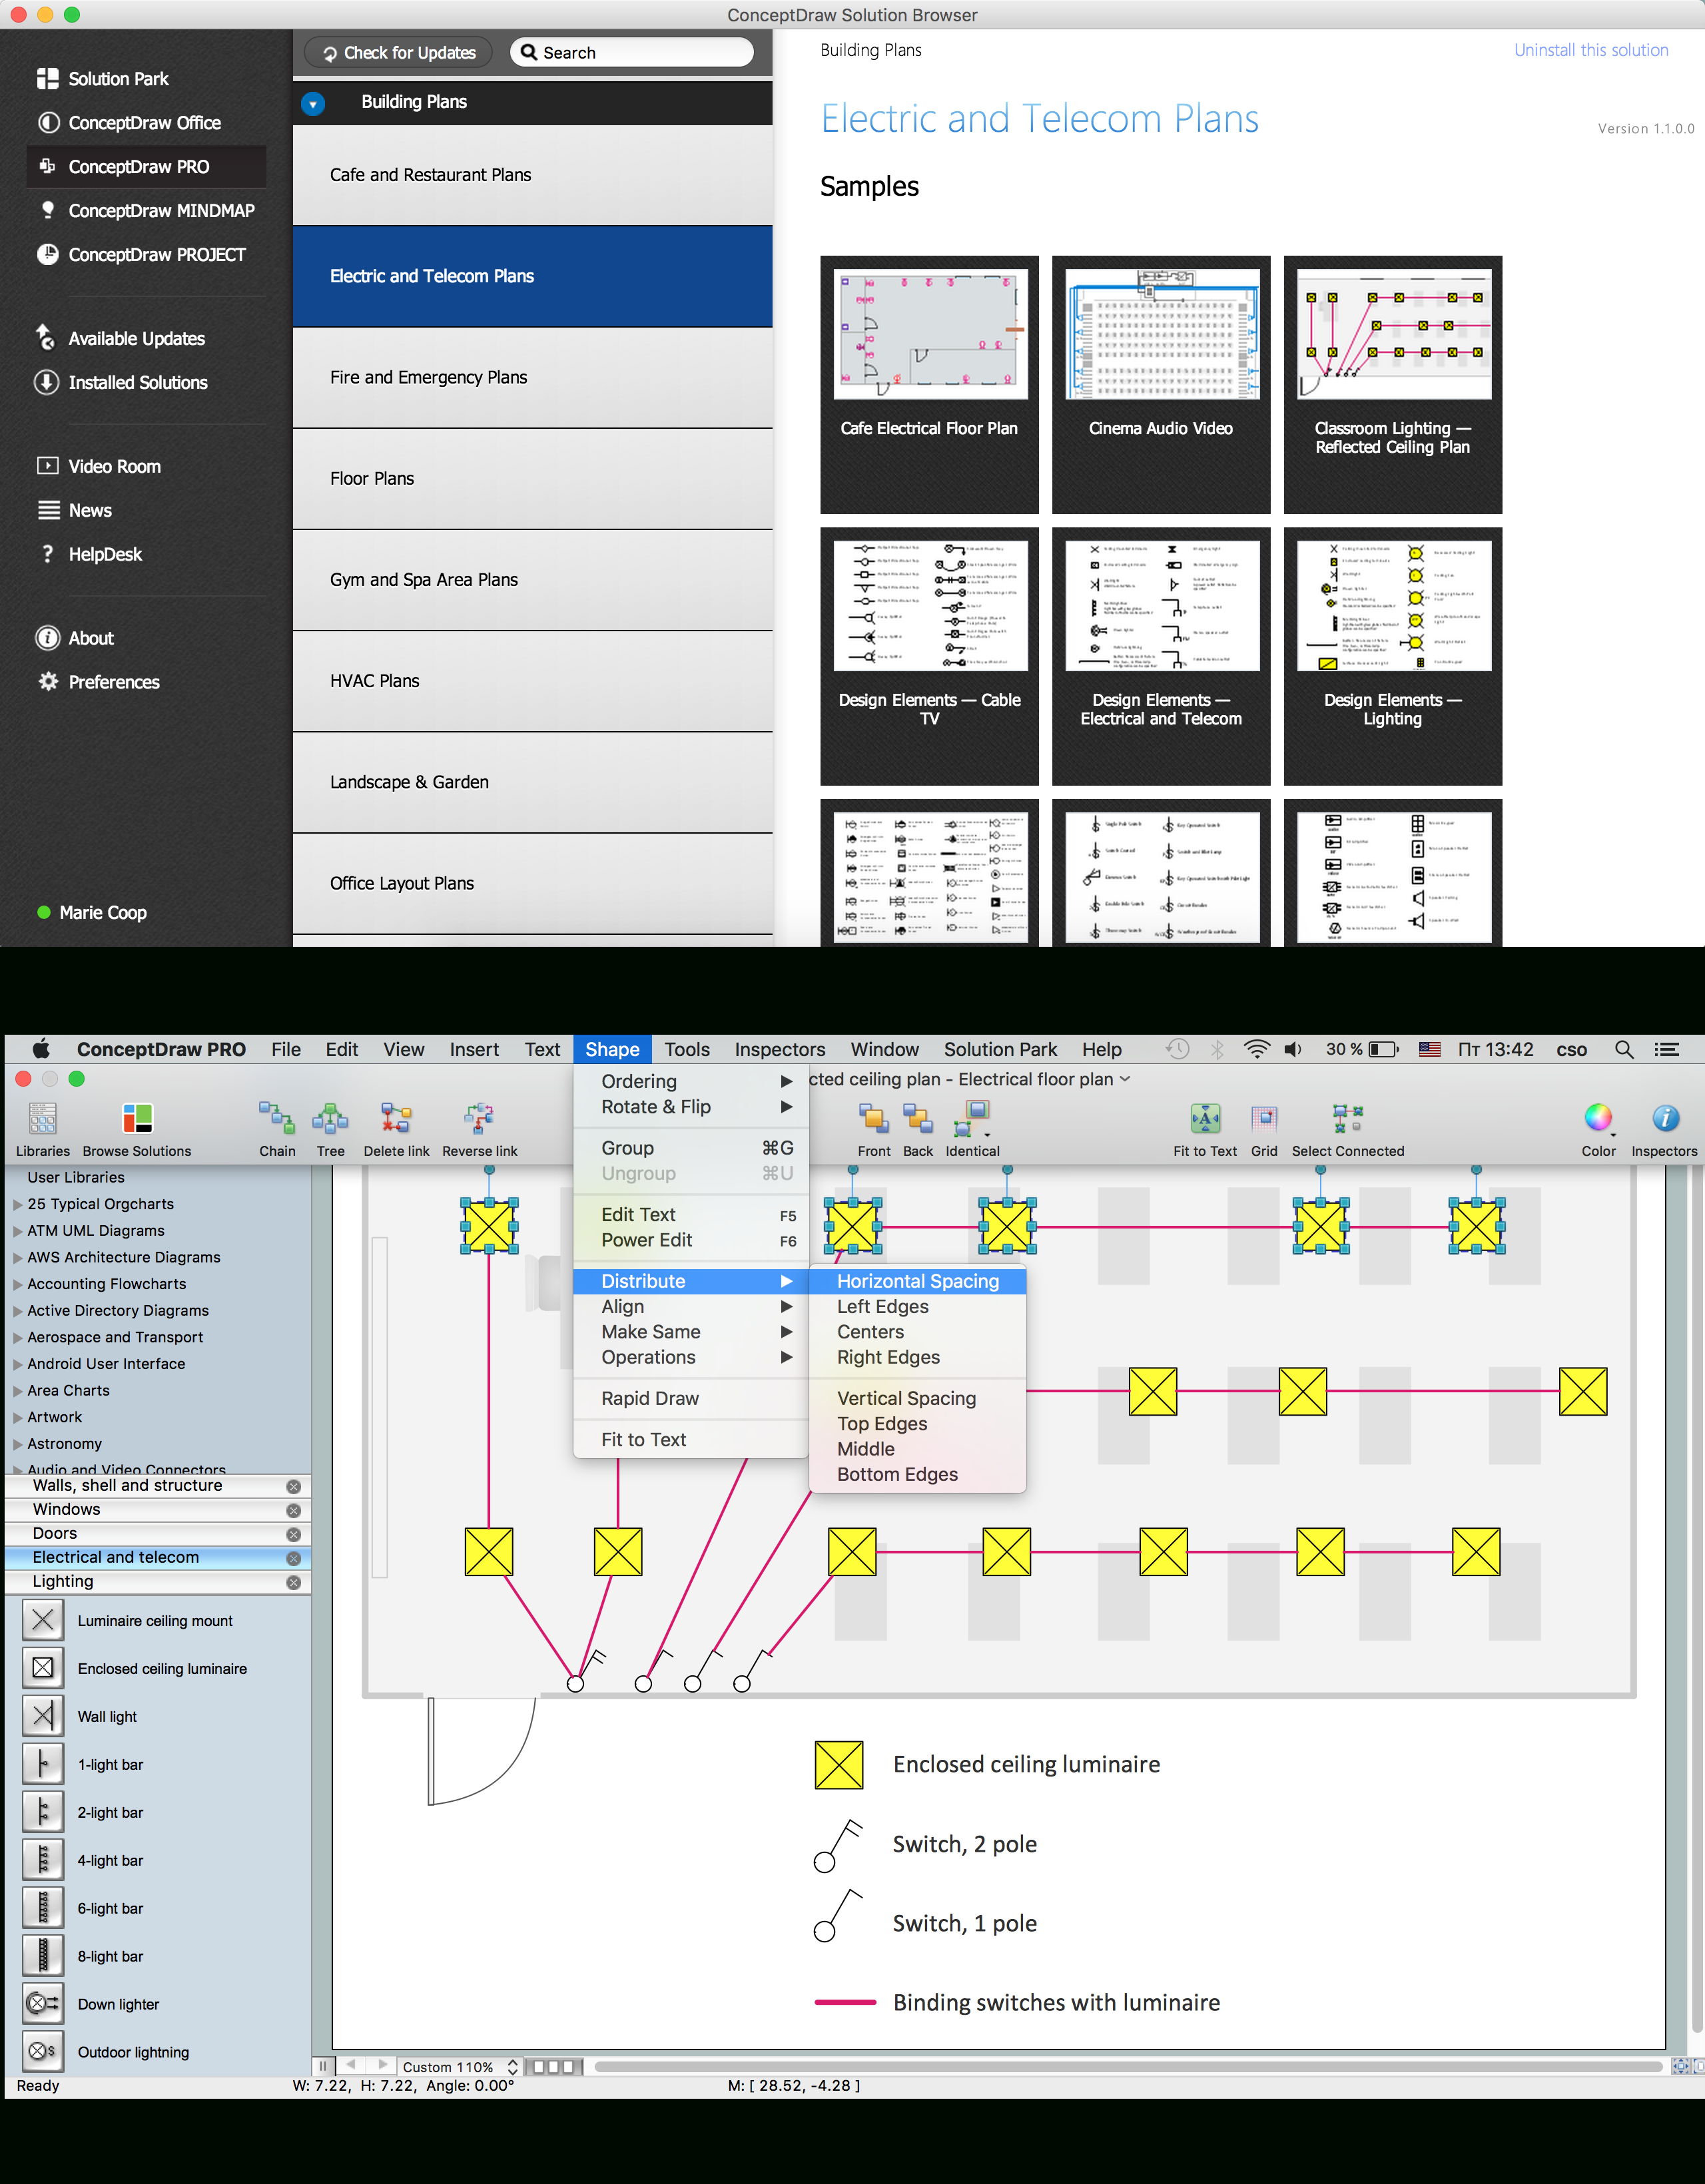 House Electrical Plan Software | Electrical Diagram Software - Nest Wheres My Custom Wiring Diagram